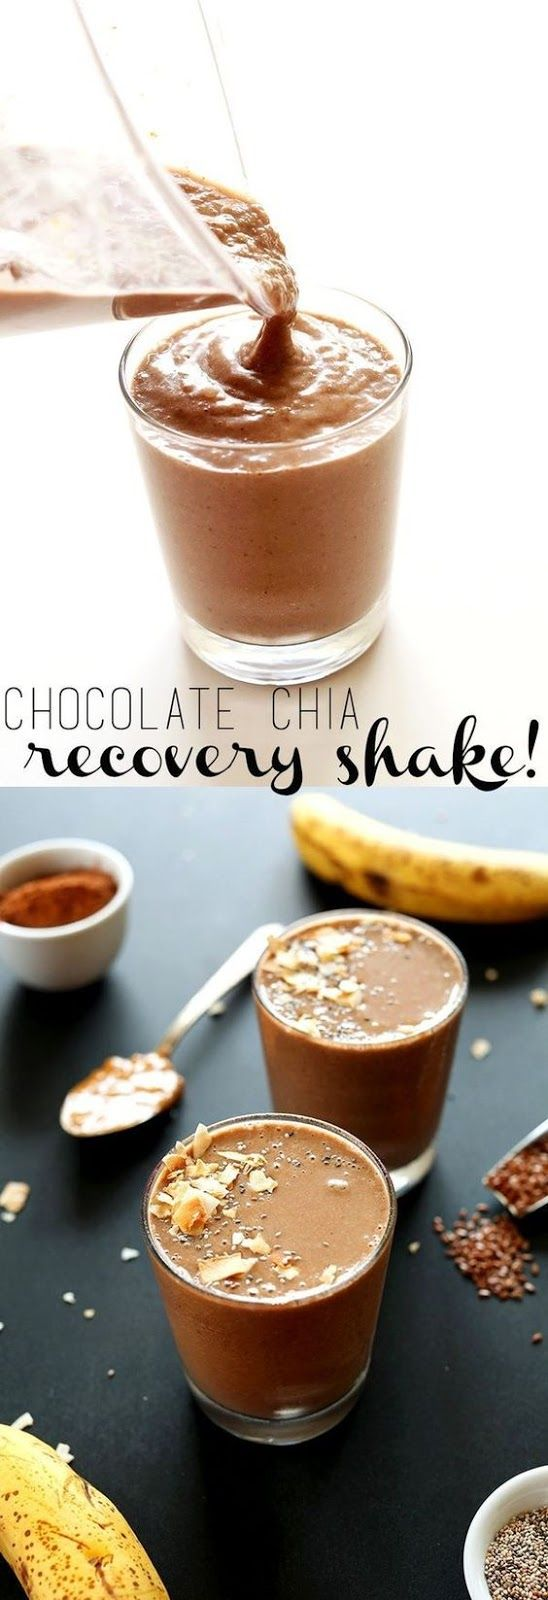 Best Recipes: HEALTHY CHOCOLATE CHIA PROTEIN SHAKE #healthychocolateshakes